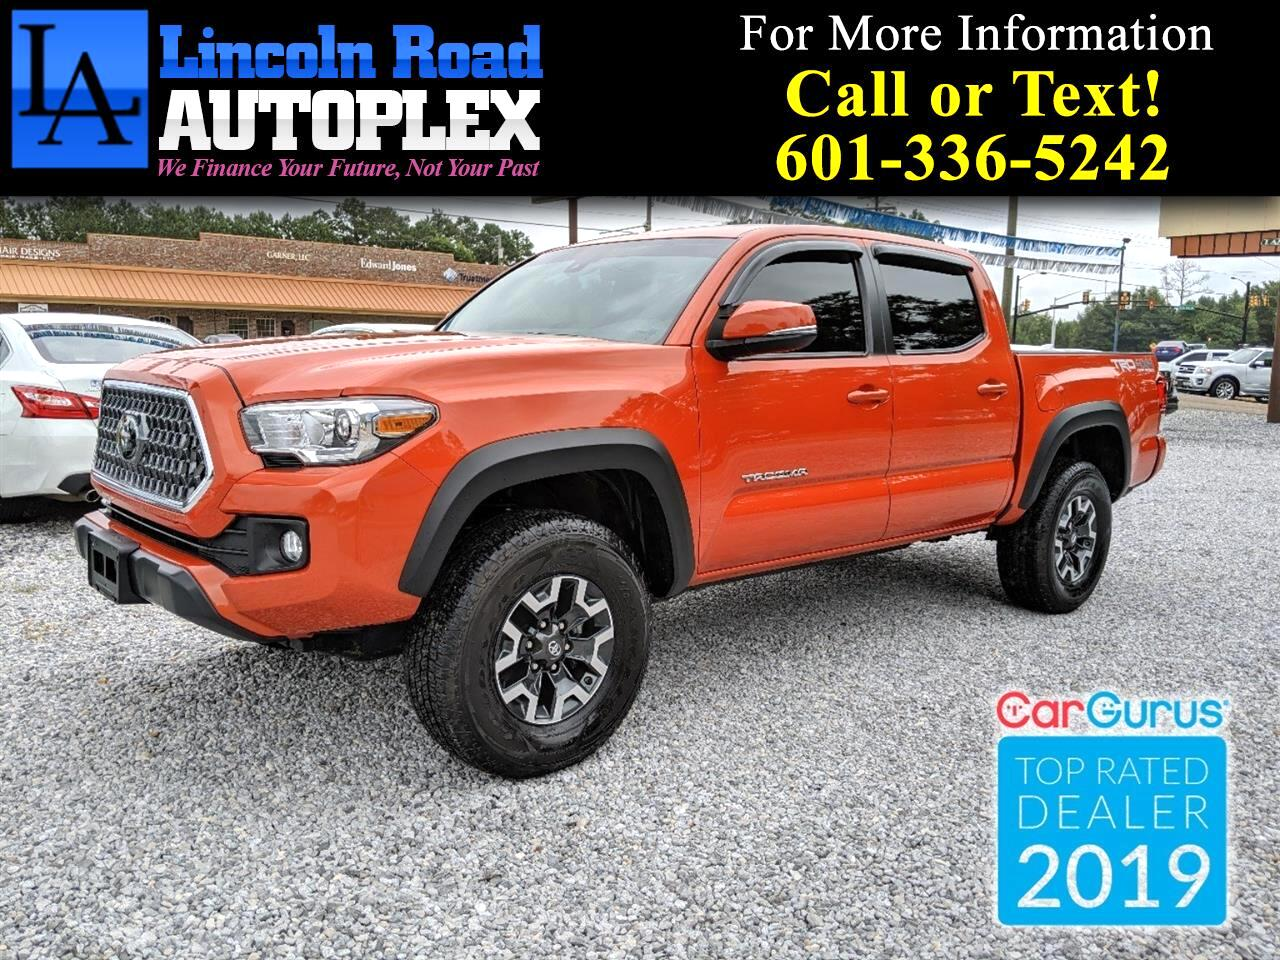 Used Cars Hattiesburg Ms >> Used Cars For Sale Hattiesburg Ms 39402 Lincoln Road Autoplex